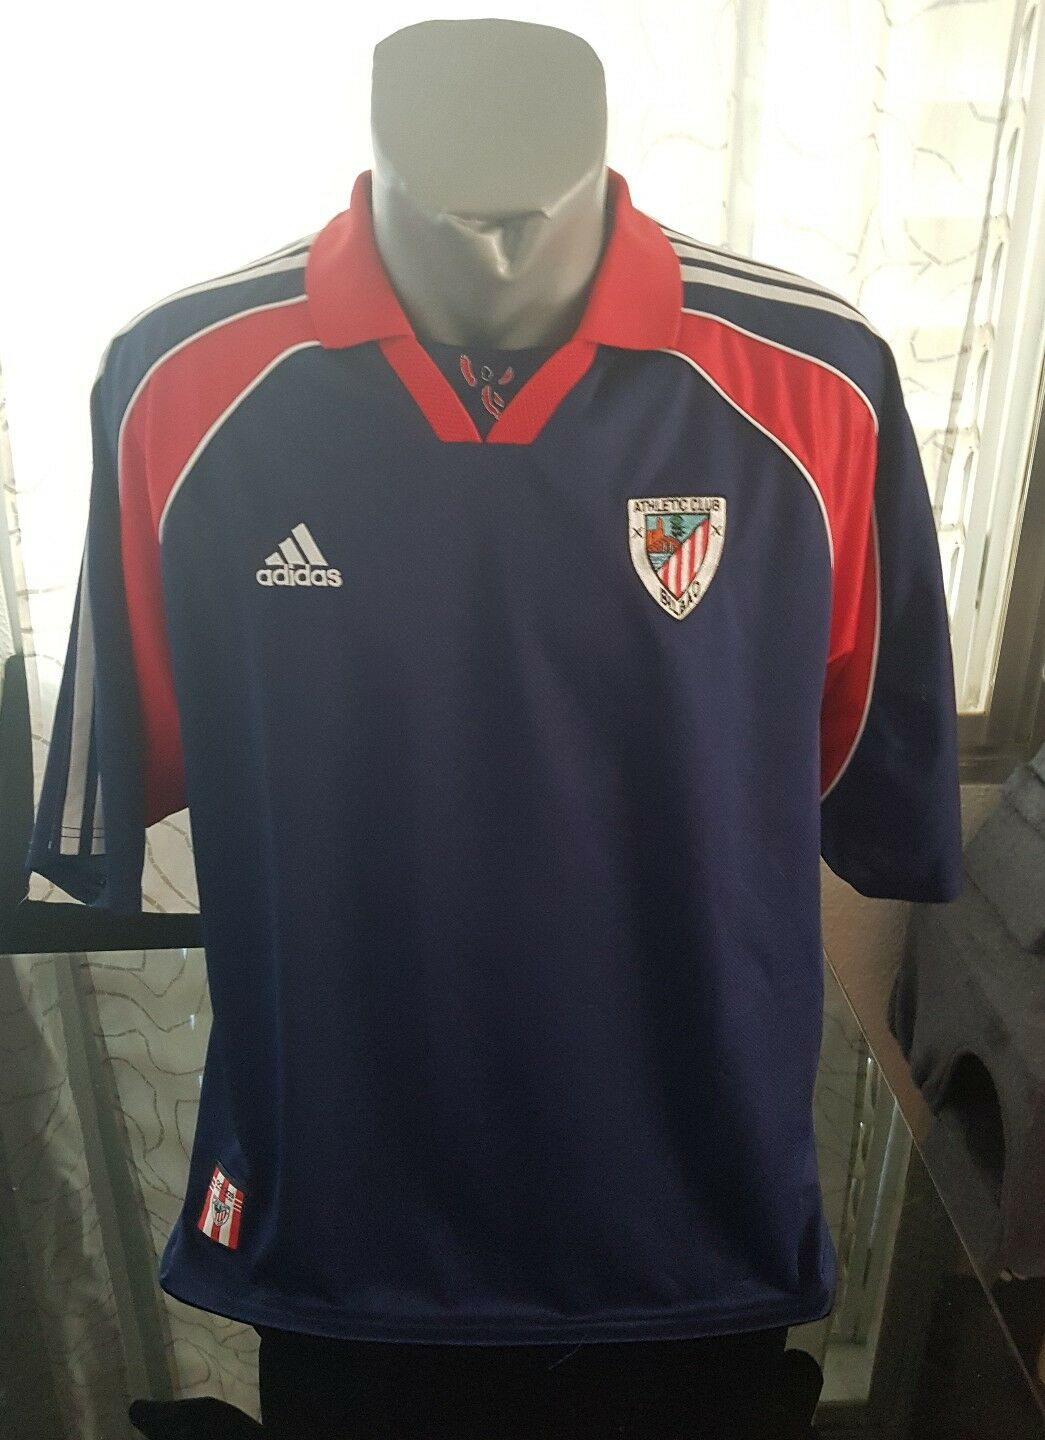 CAMISETA SHIRT VINTAGE 90'S ADIDAS ATHLETIC CLUB DE BILBAO Taille XL